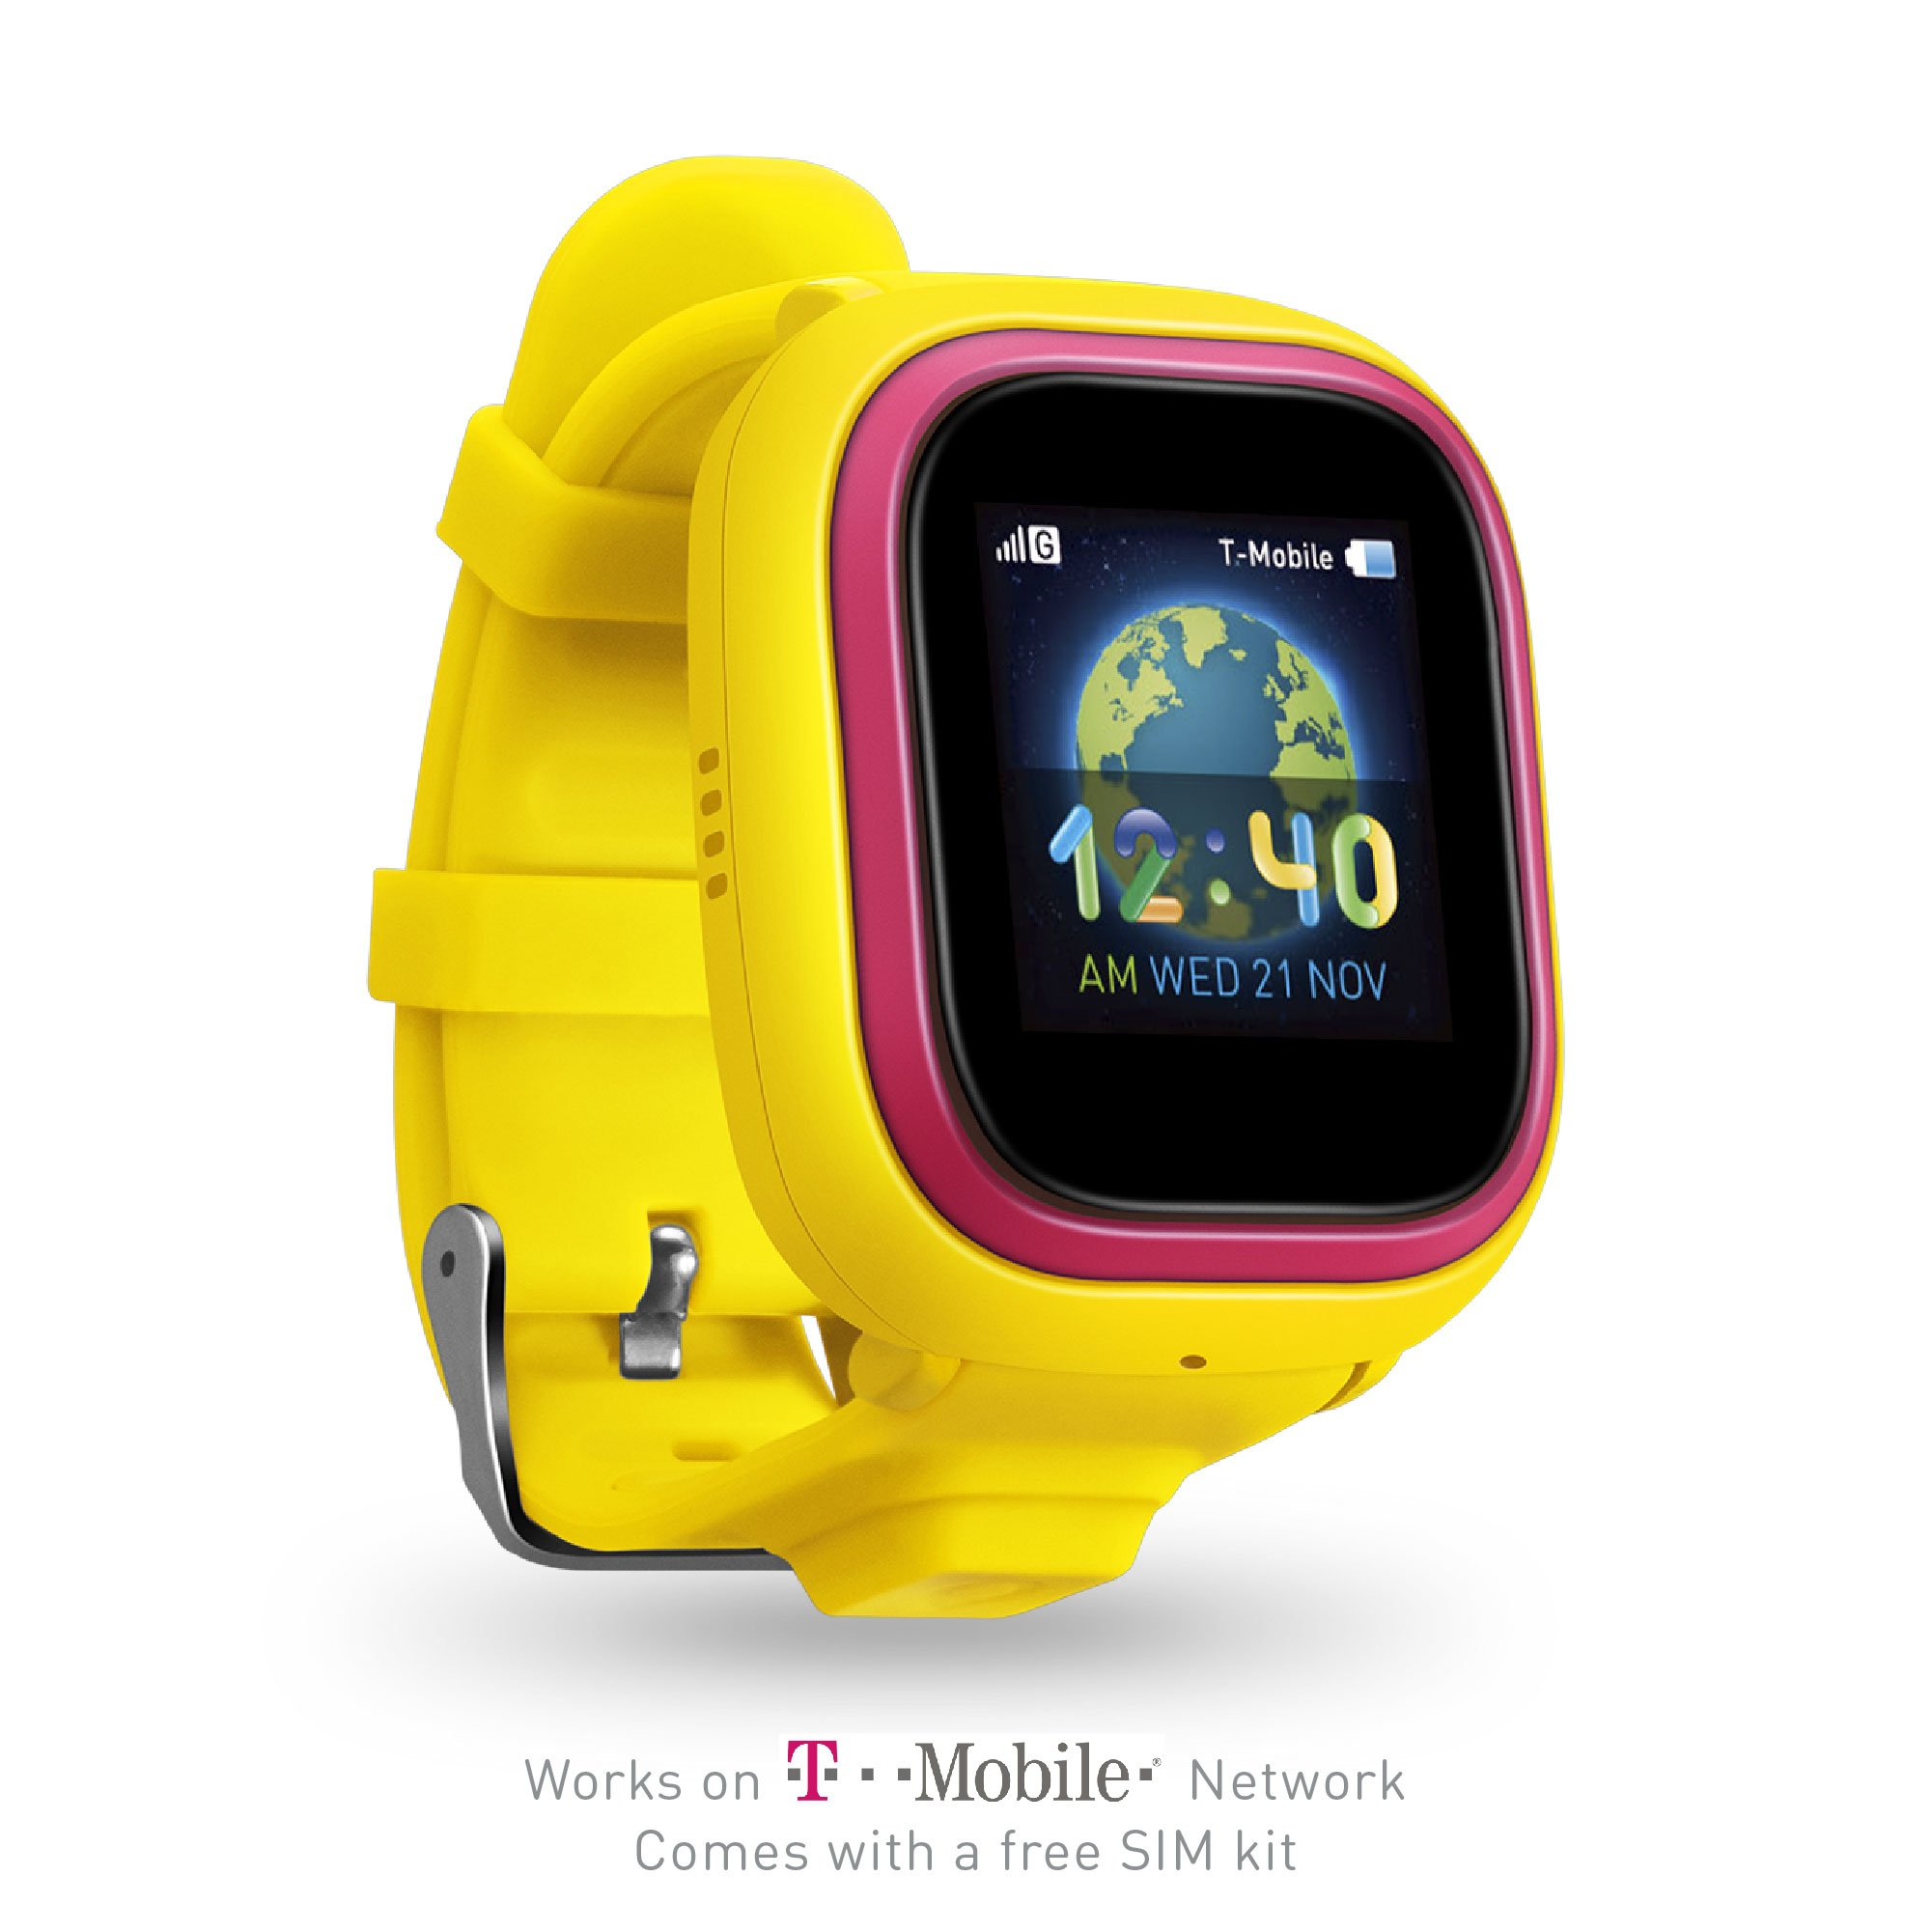 TickTalk 2 Touch Screen Kids Smart Watch, GPS Phone watch, Anti Lost GPS tracker with New App, Better Positioning Chip, Things To Do Reminder, Phone/Messaging FREE SIM KIT (Yellow) by TickTalk